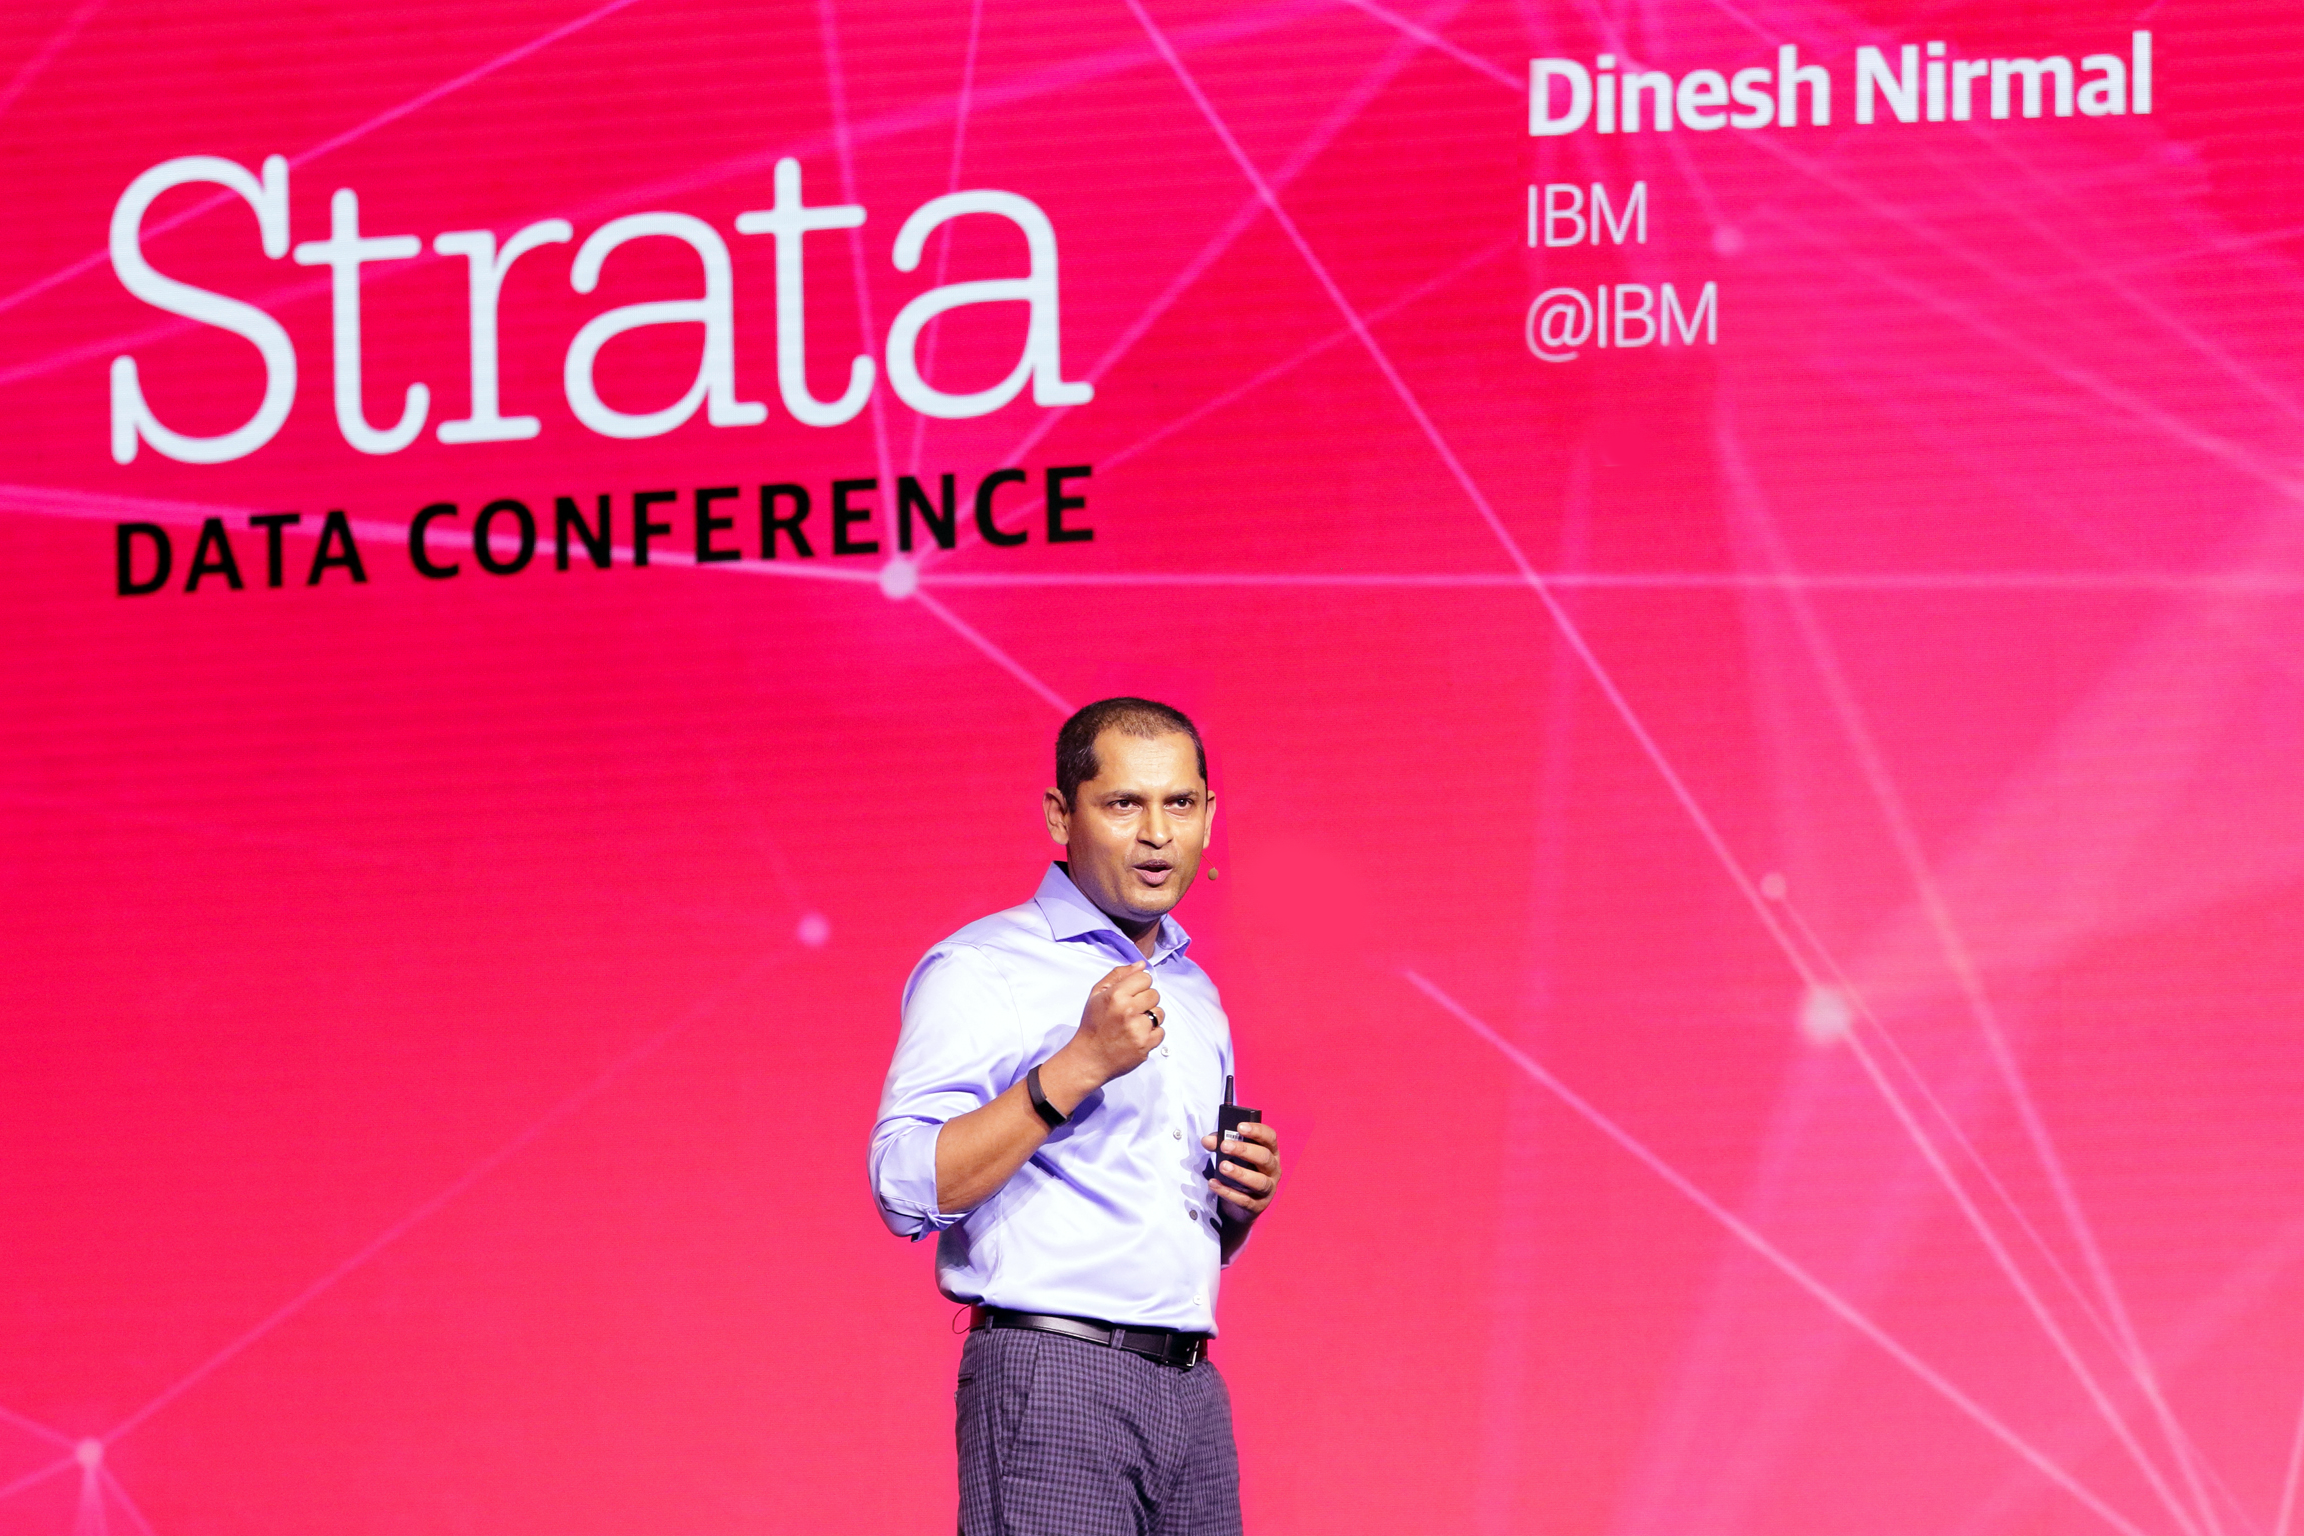 Keynote at Strata Data San Francisco 2019:Modernizing Your Data Estates for anAI and Multicloud World - IBM's Dinesh Nirmal shares a data asset framework that incorporates current business structures and the elements you need for an AI-fluent data platform.